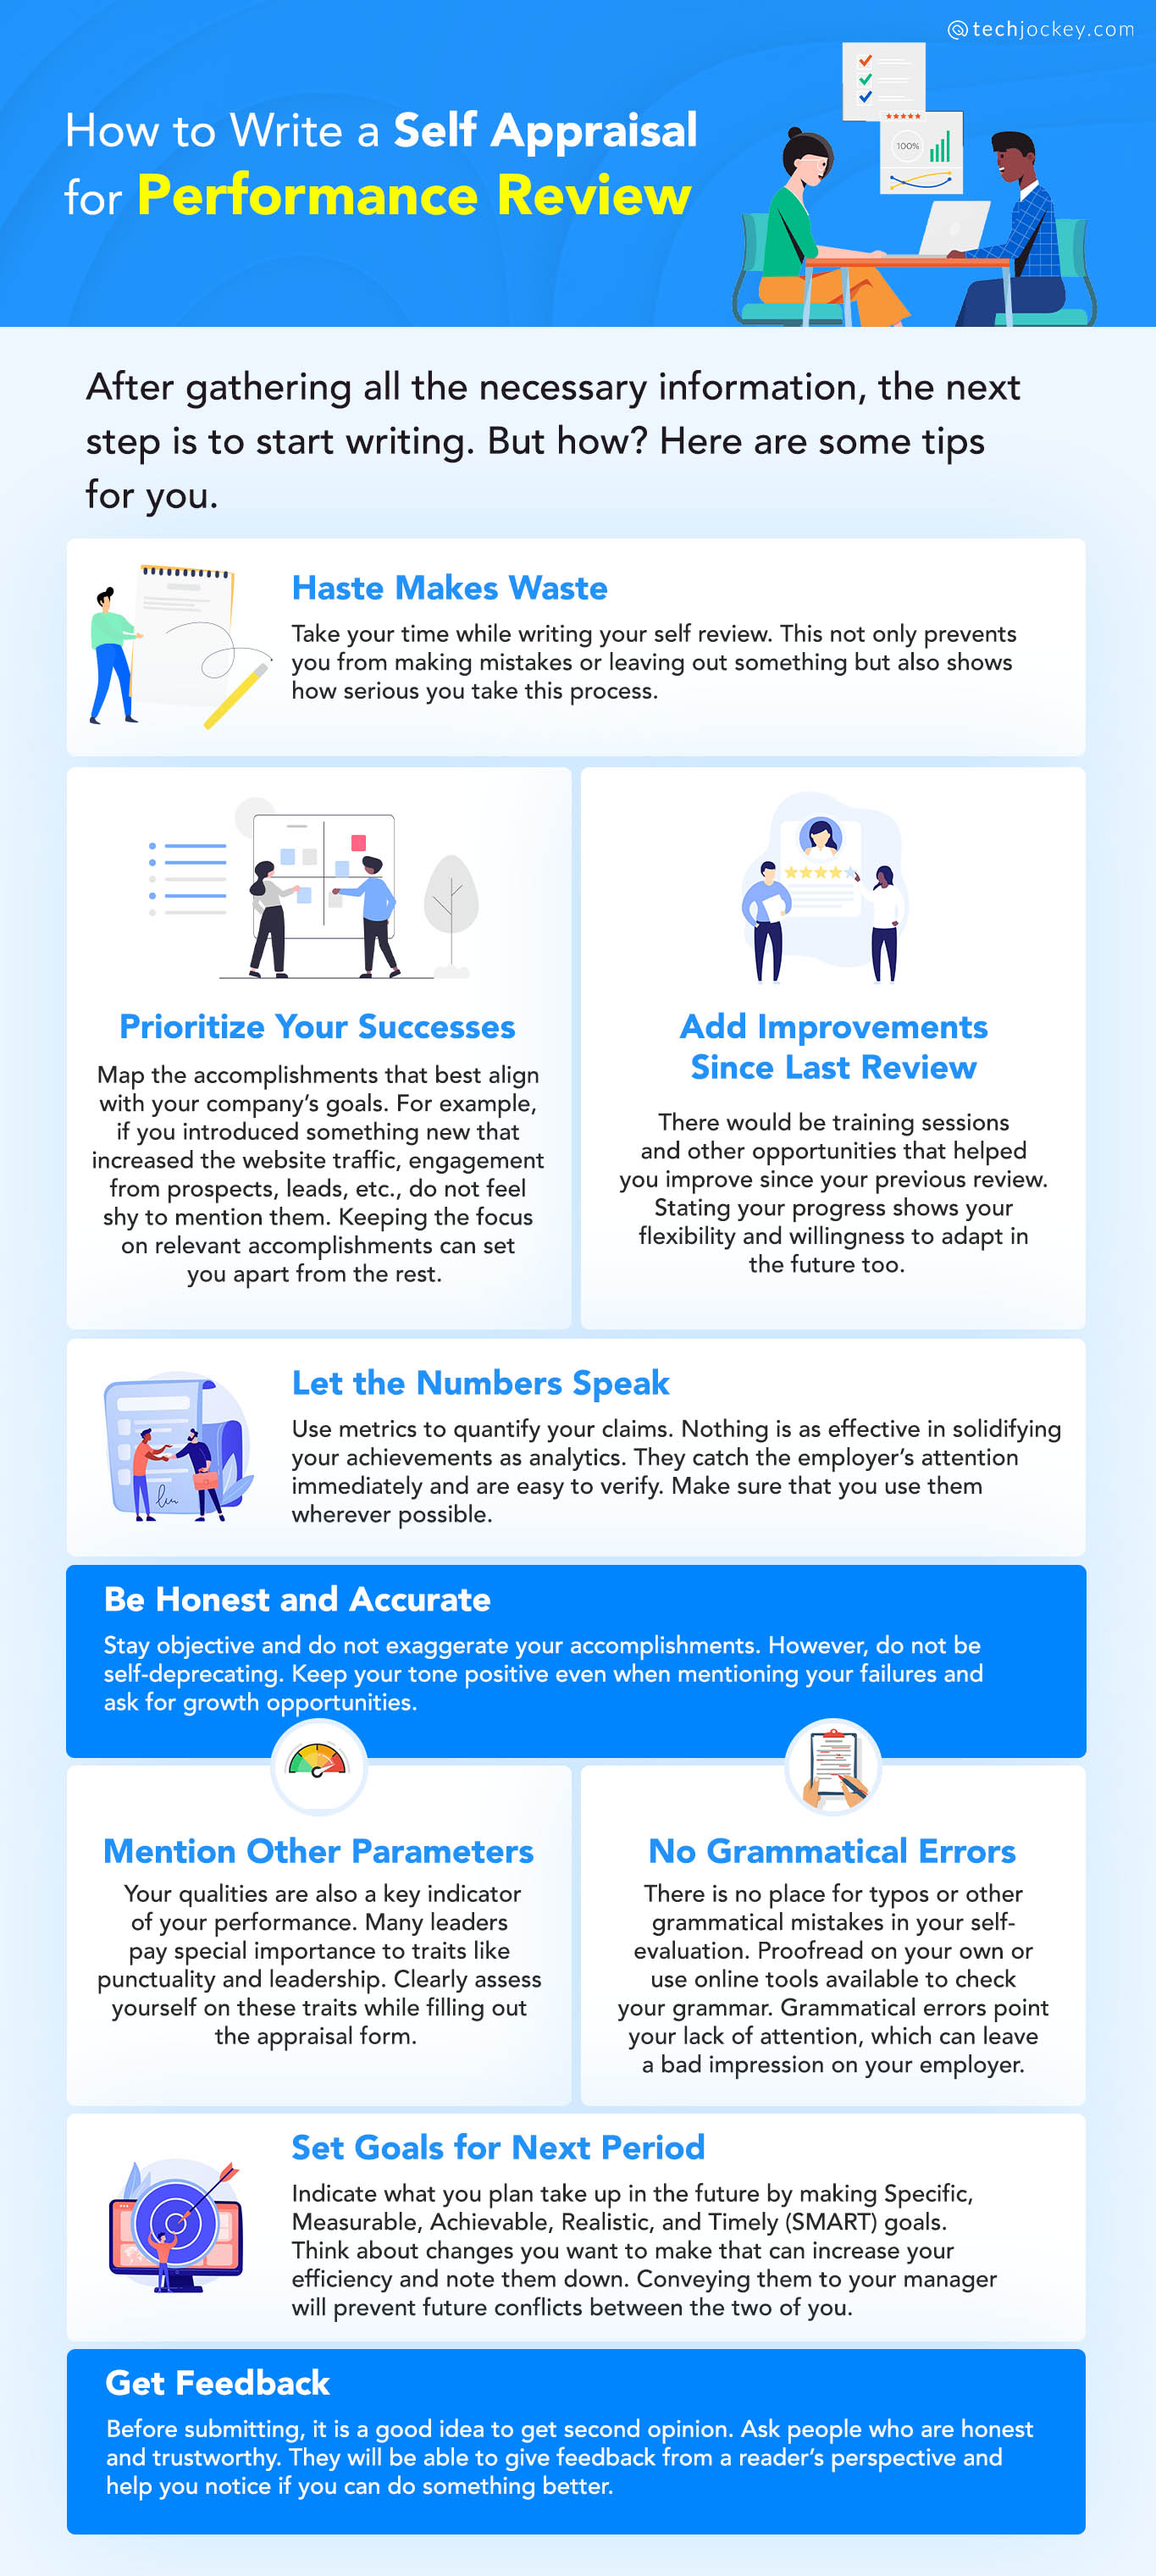 How to Write a Self Appraisal for Performance Review